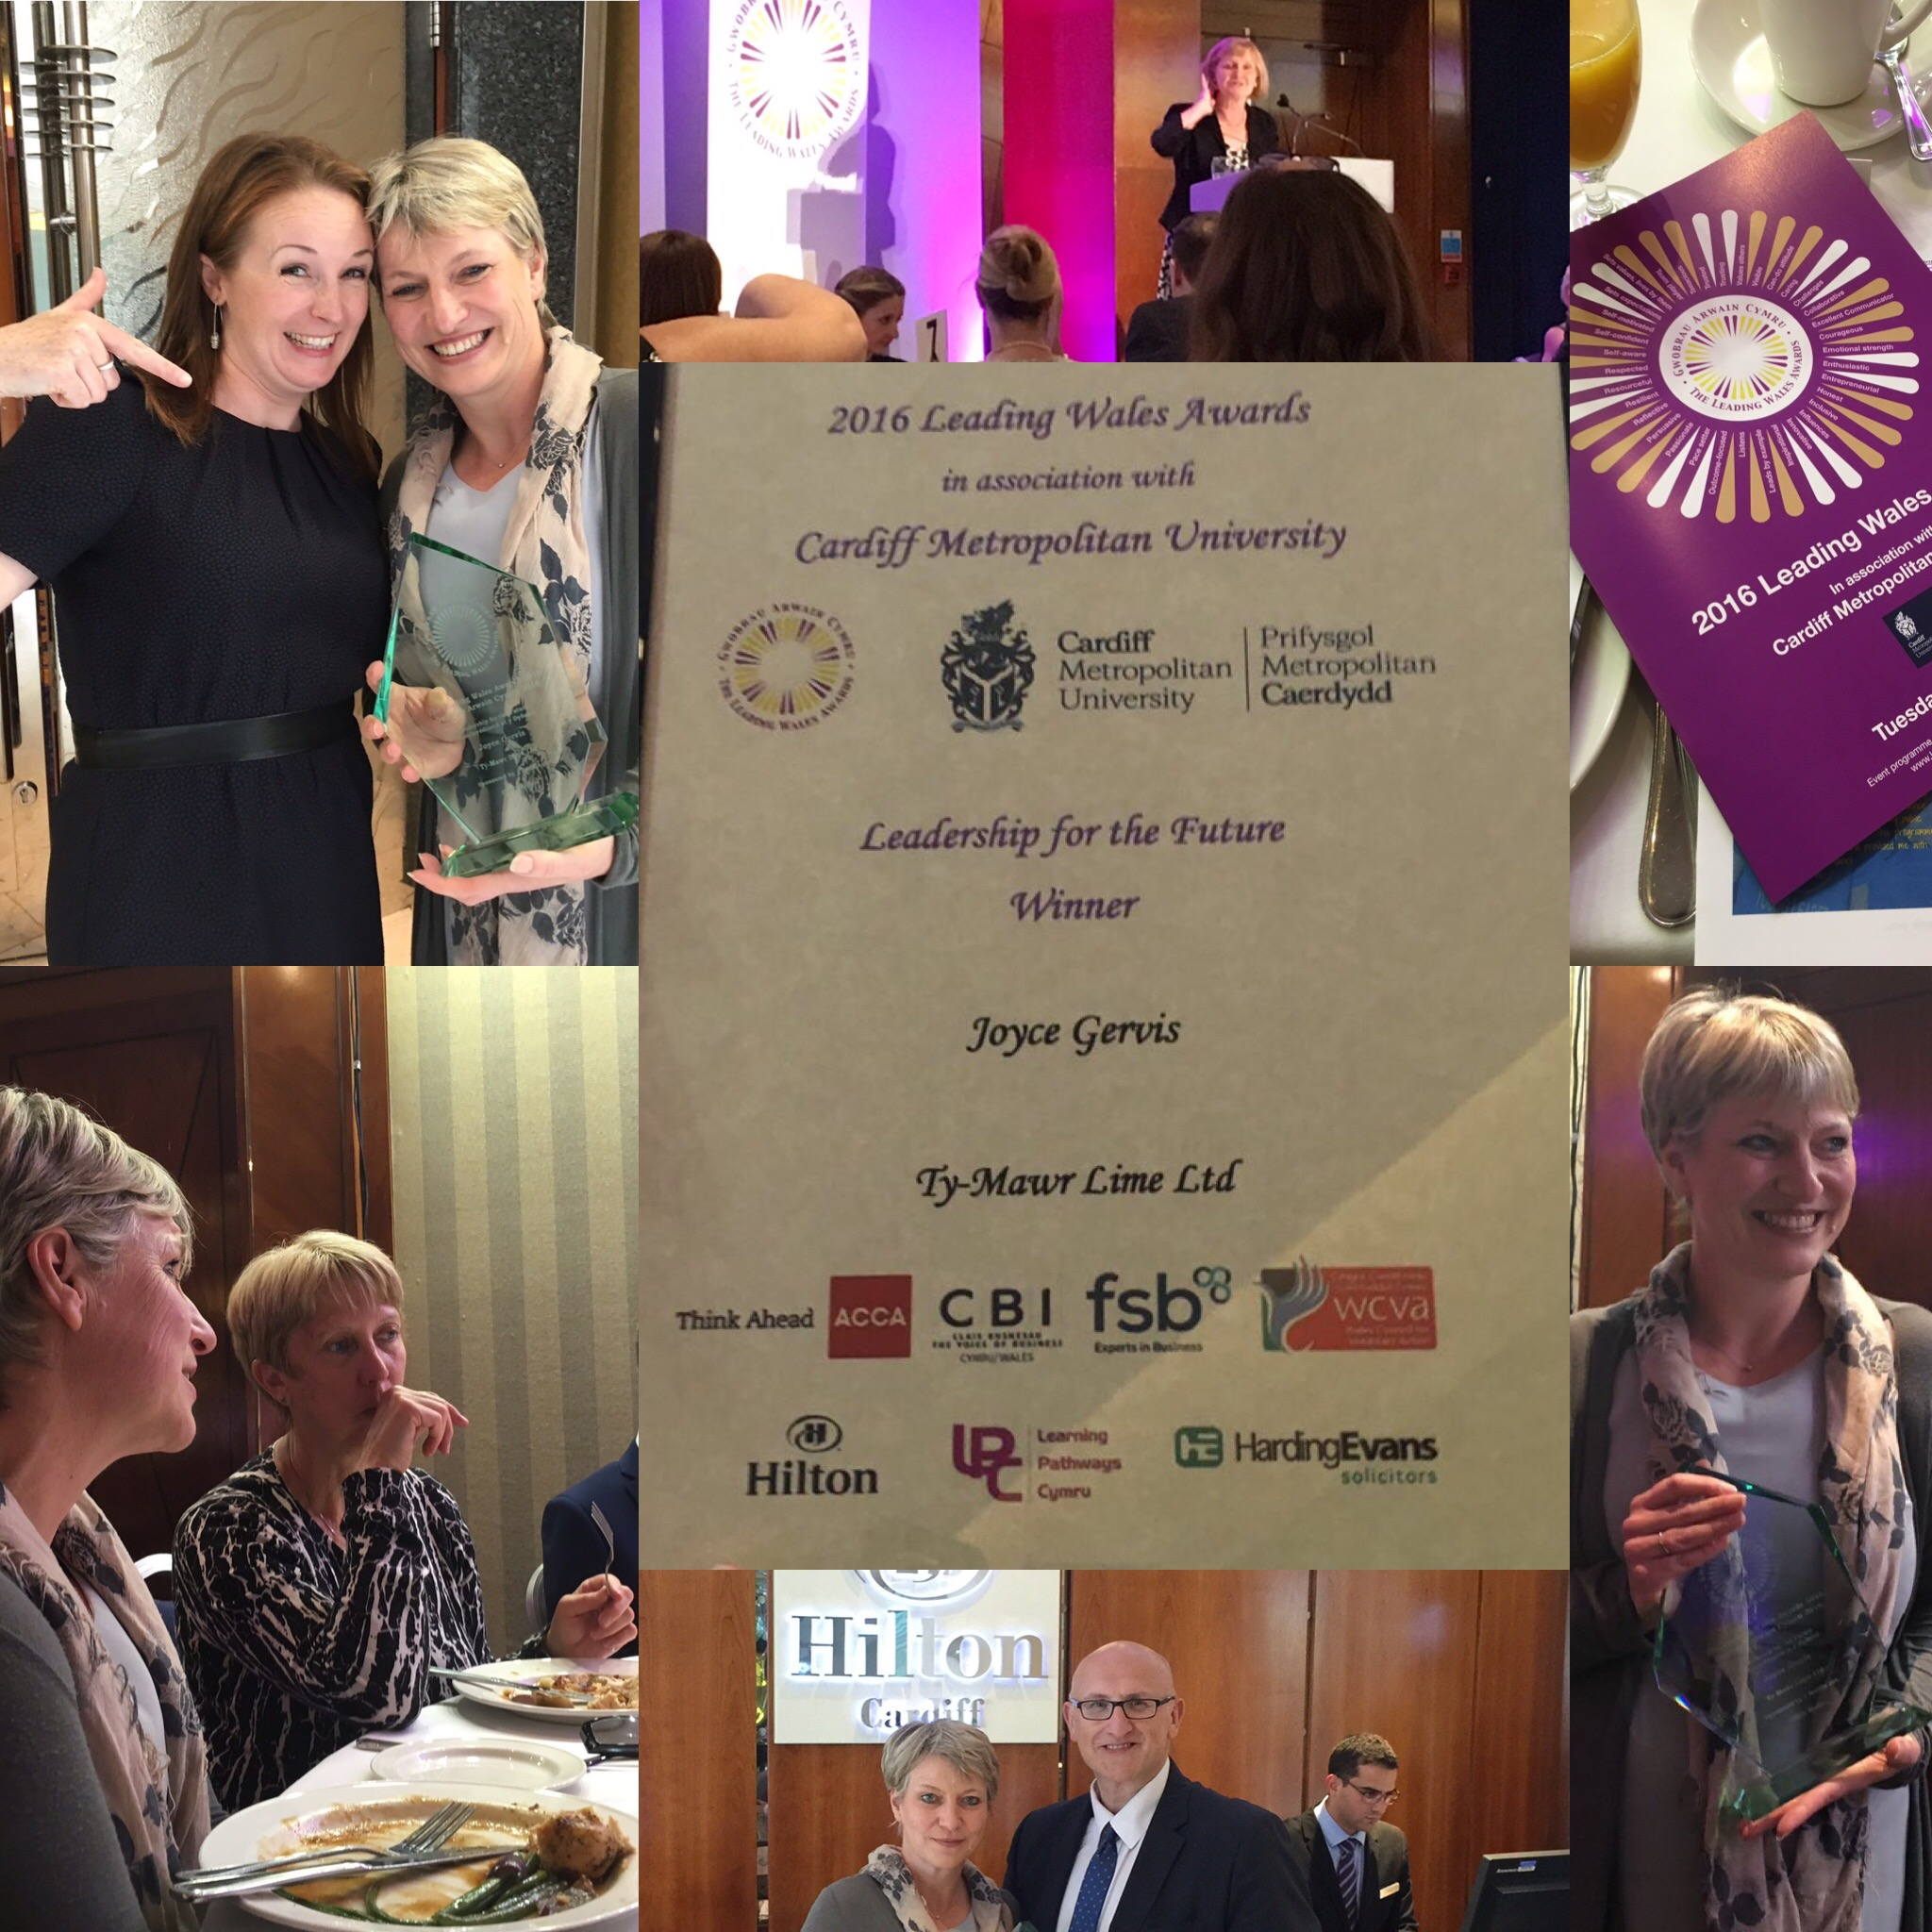 A montage of the Leading Wales Awards